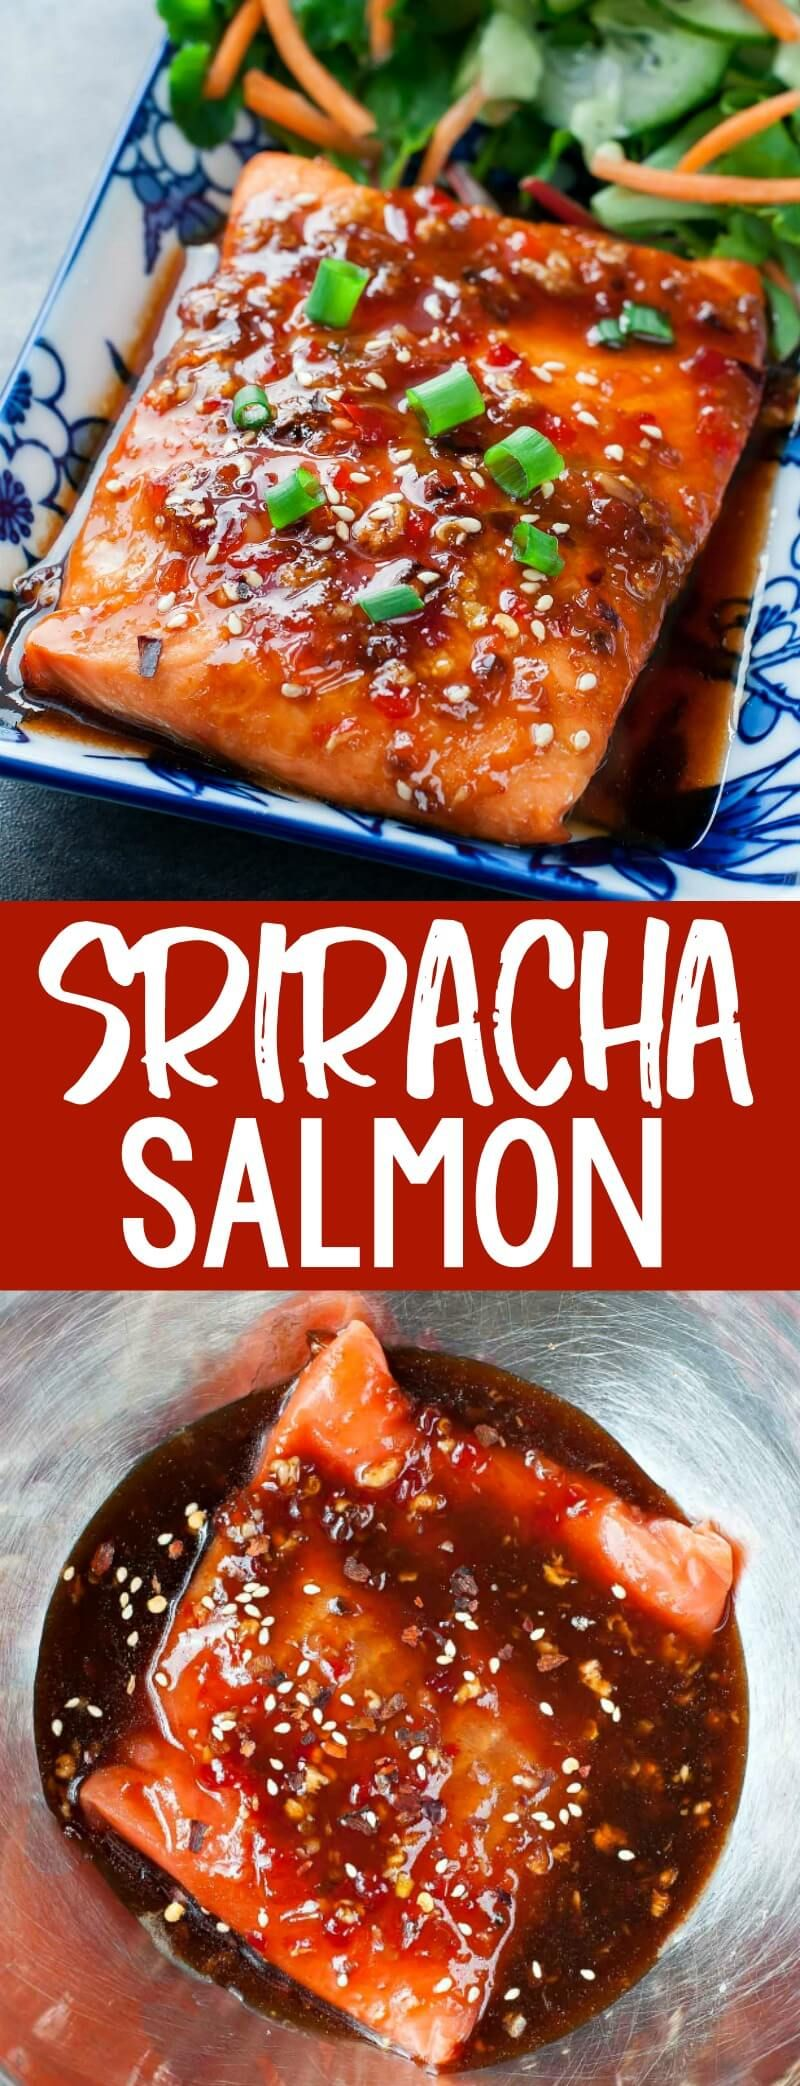 Sweet Chili Sriracha Salmon Recipe - Peas and Crayons